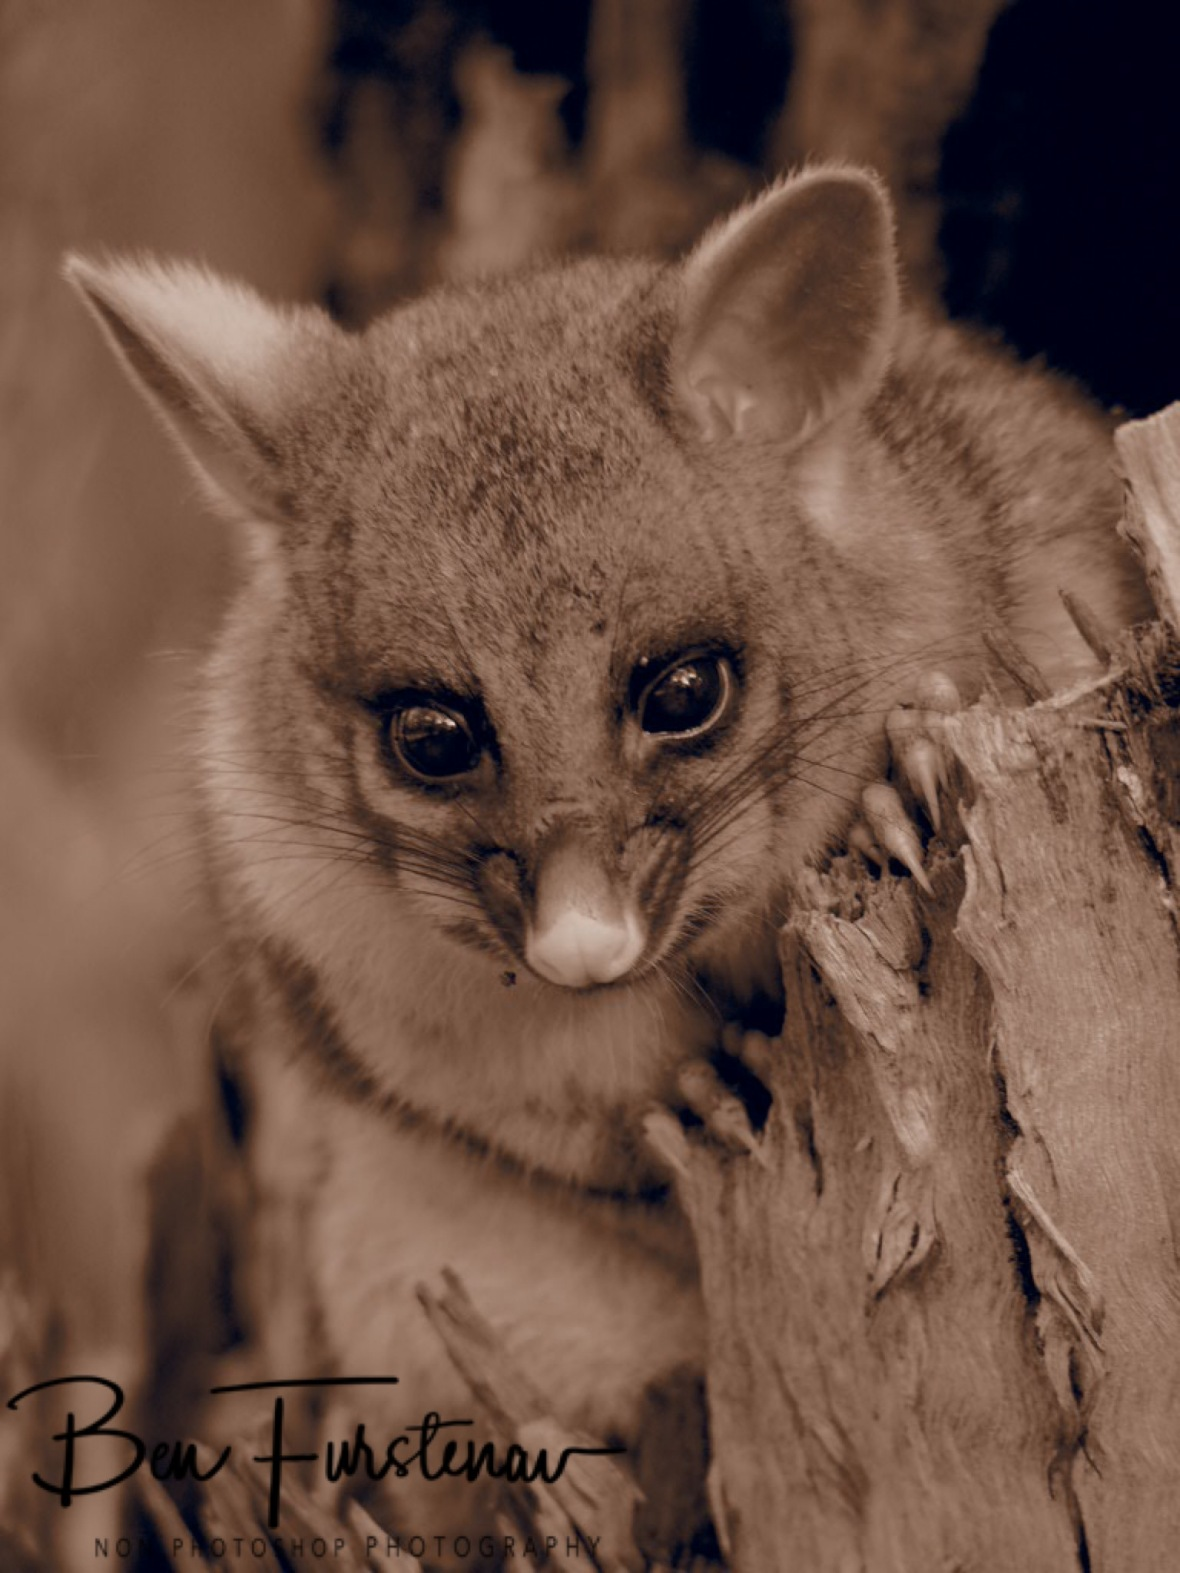 Ear movement in sepia, Atherton Tablelands, Far North Queensland, Australia